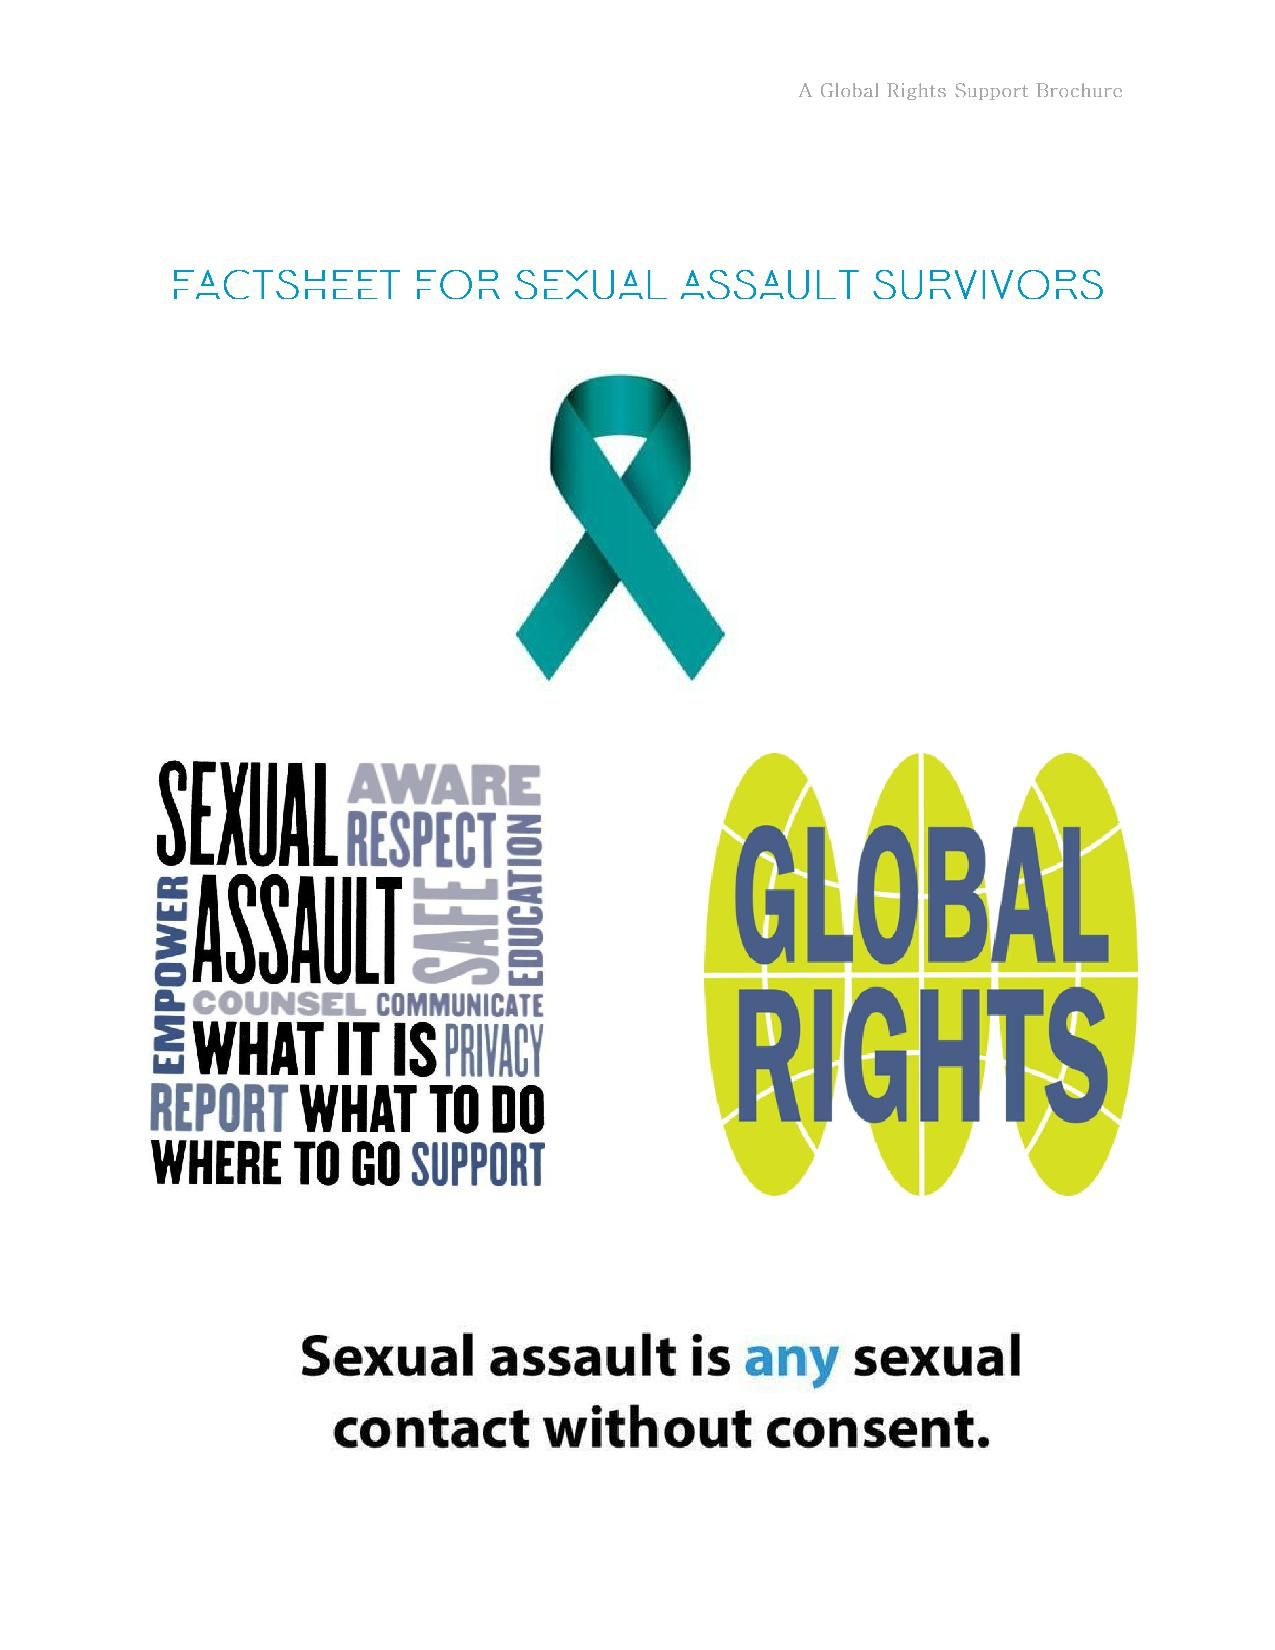 Factsheet for Sexual Assault Survivors